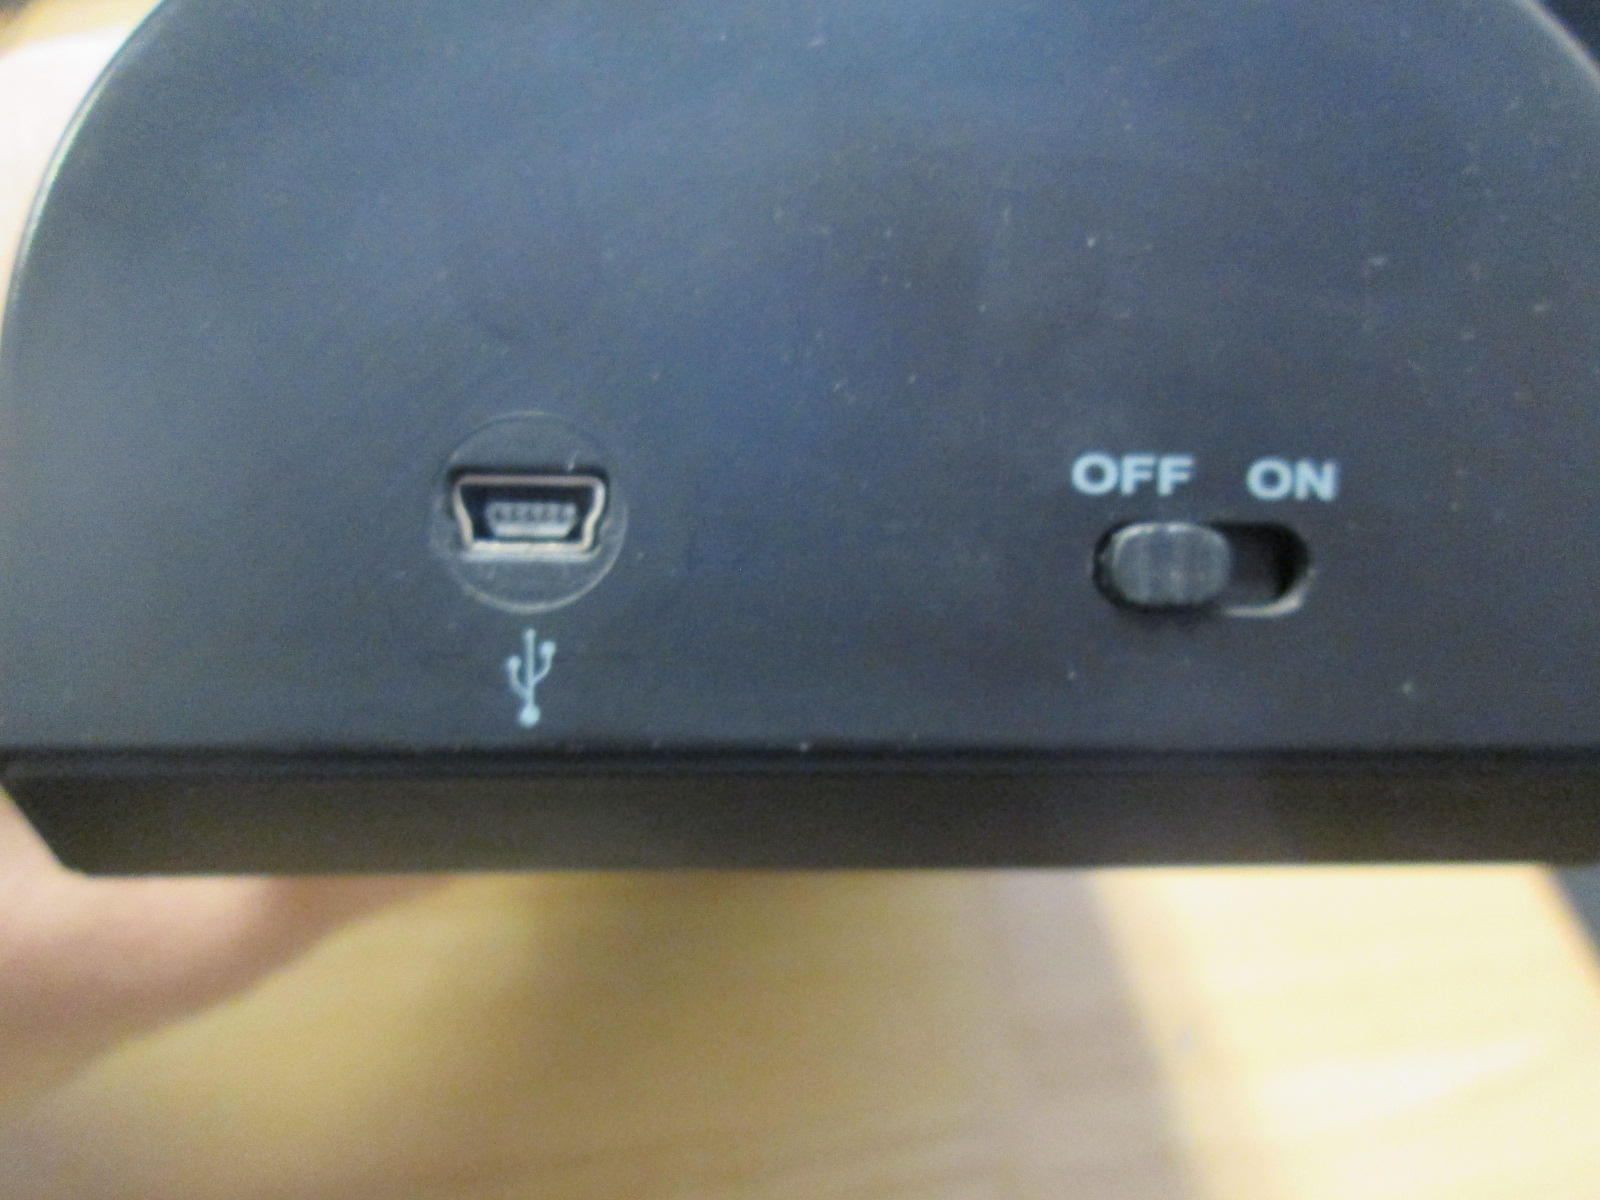 Image 1 of Intec Rechargeable Battery Charger For Xbox 360 Controllers Incomplete